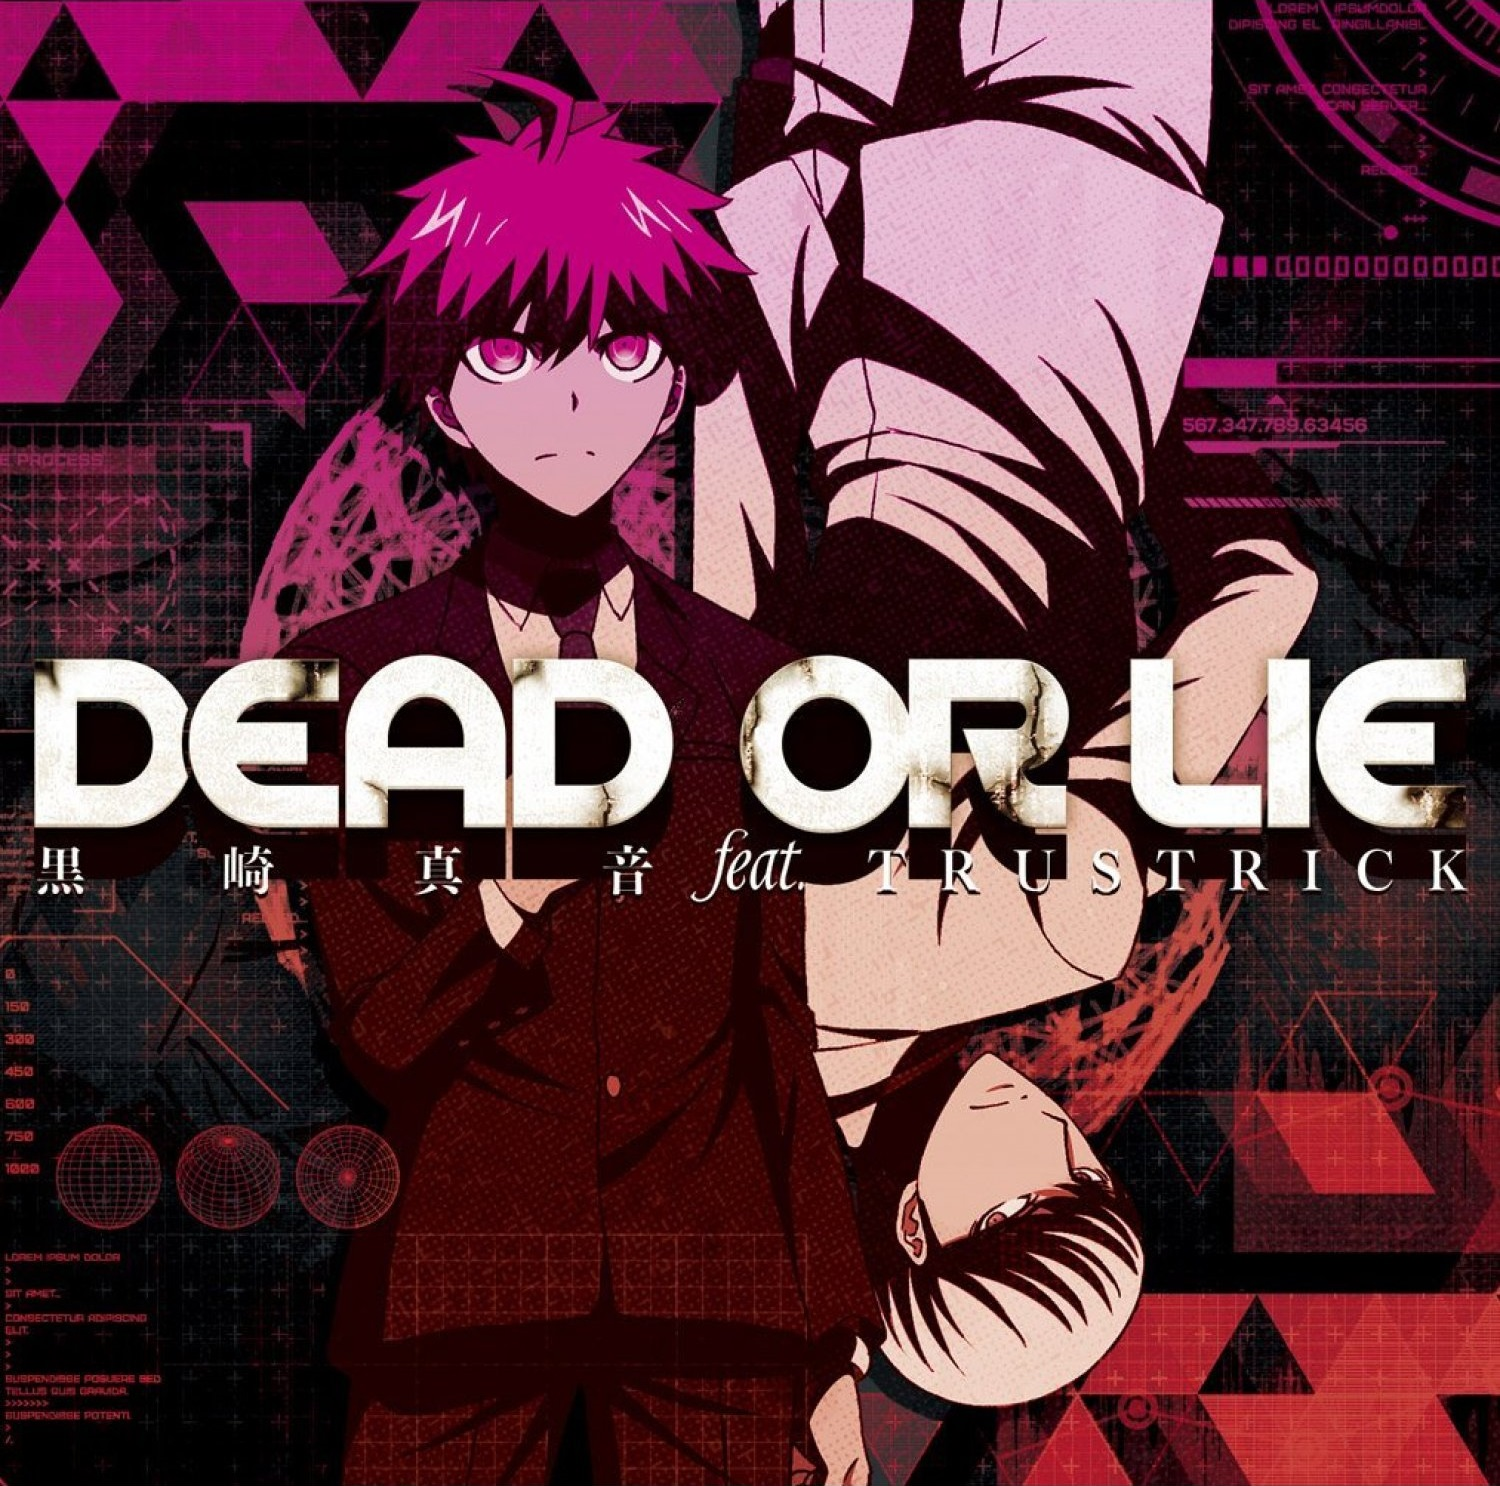 20170415.0846.16 Maon Kurosaki feat. Trustrick - Dead or Lie (Anime edition) (FLAC) cover 3.jpg